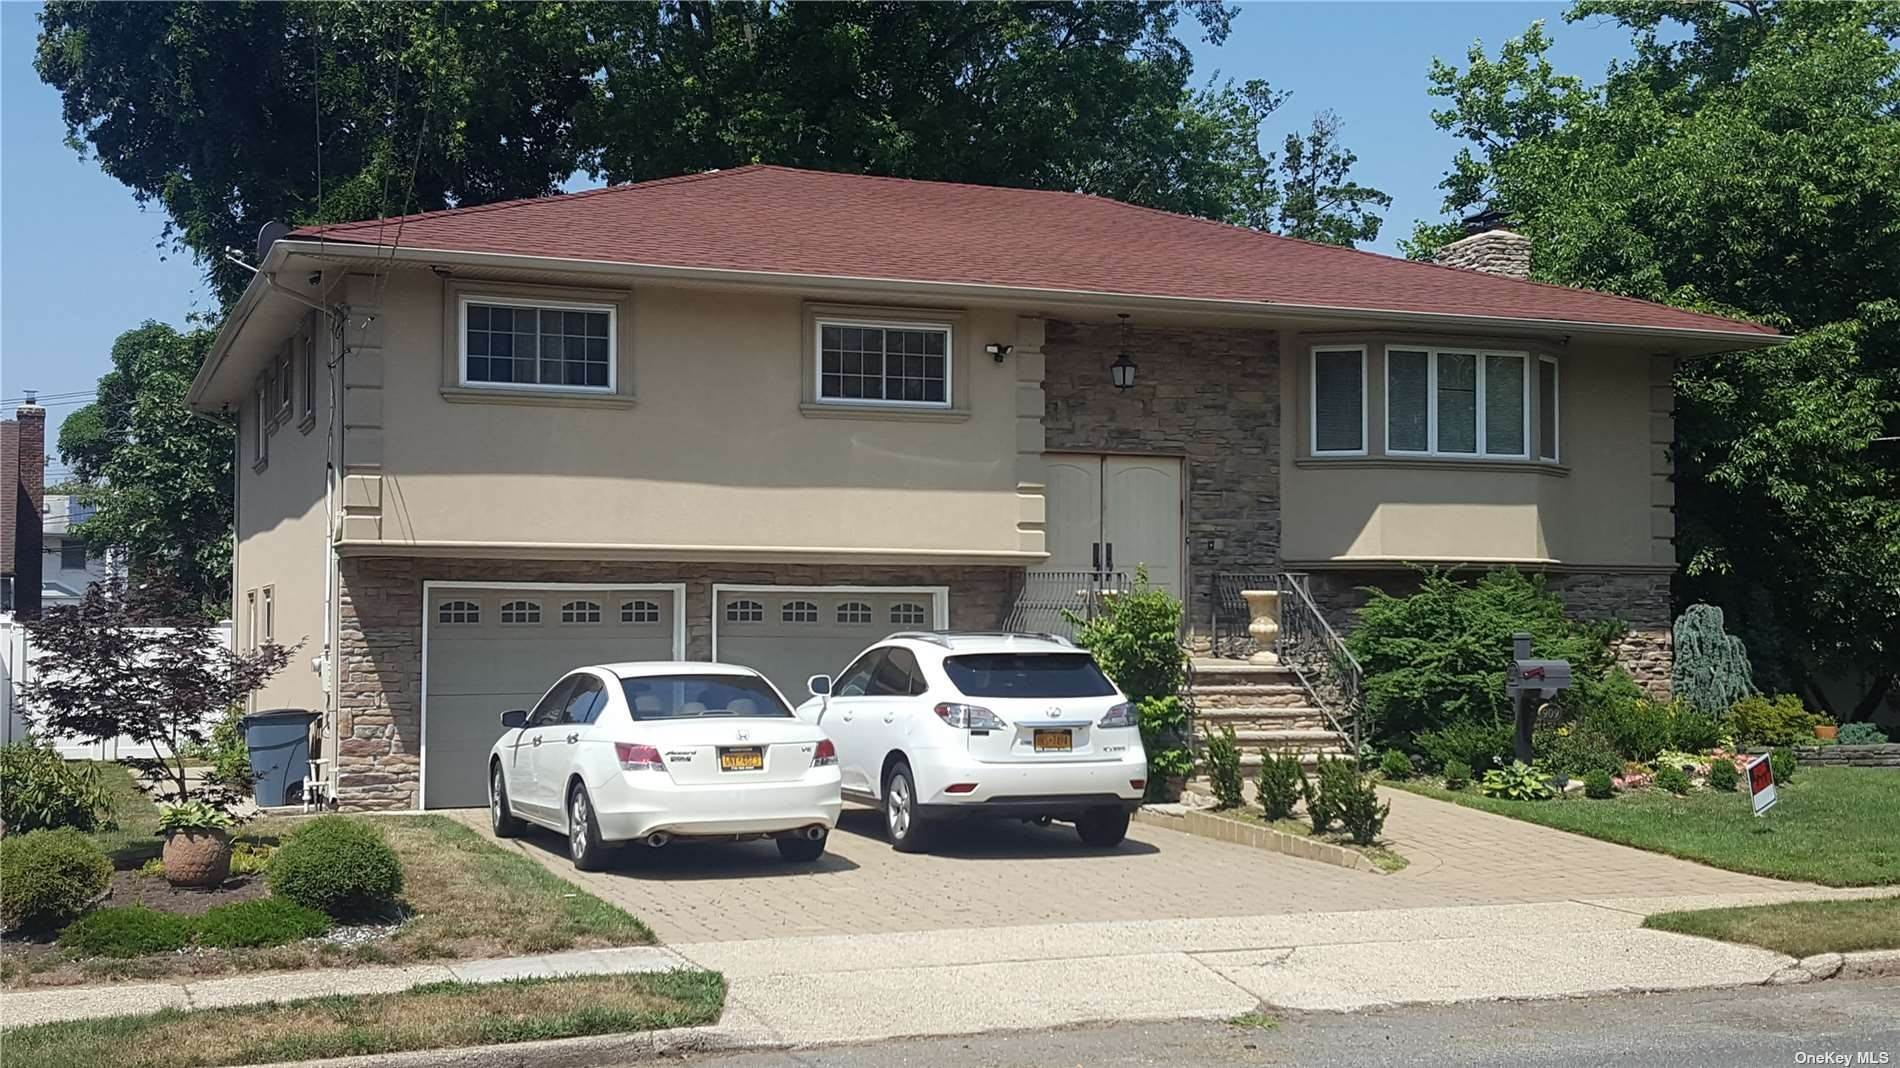 Residential for Sale at 909 Fairview Avenue North Woodmere, New York 11581 United States